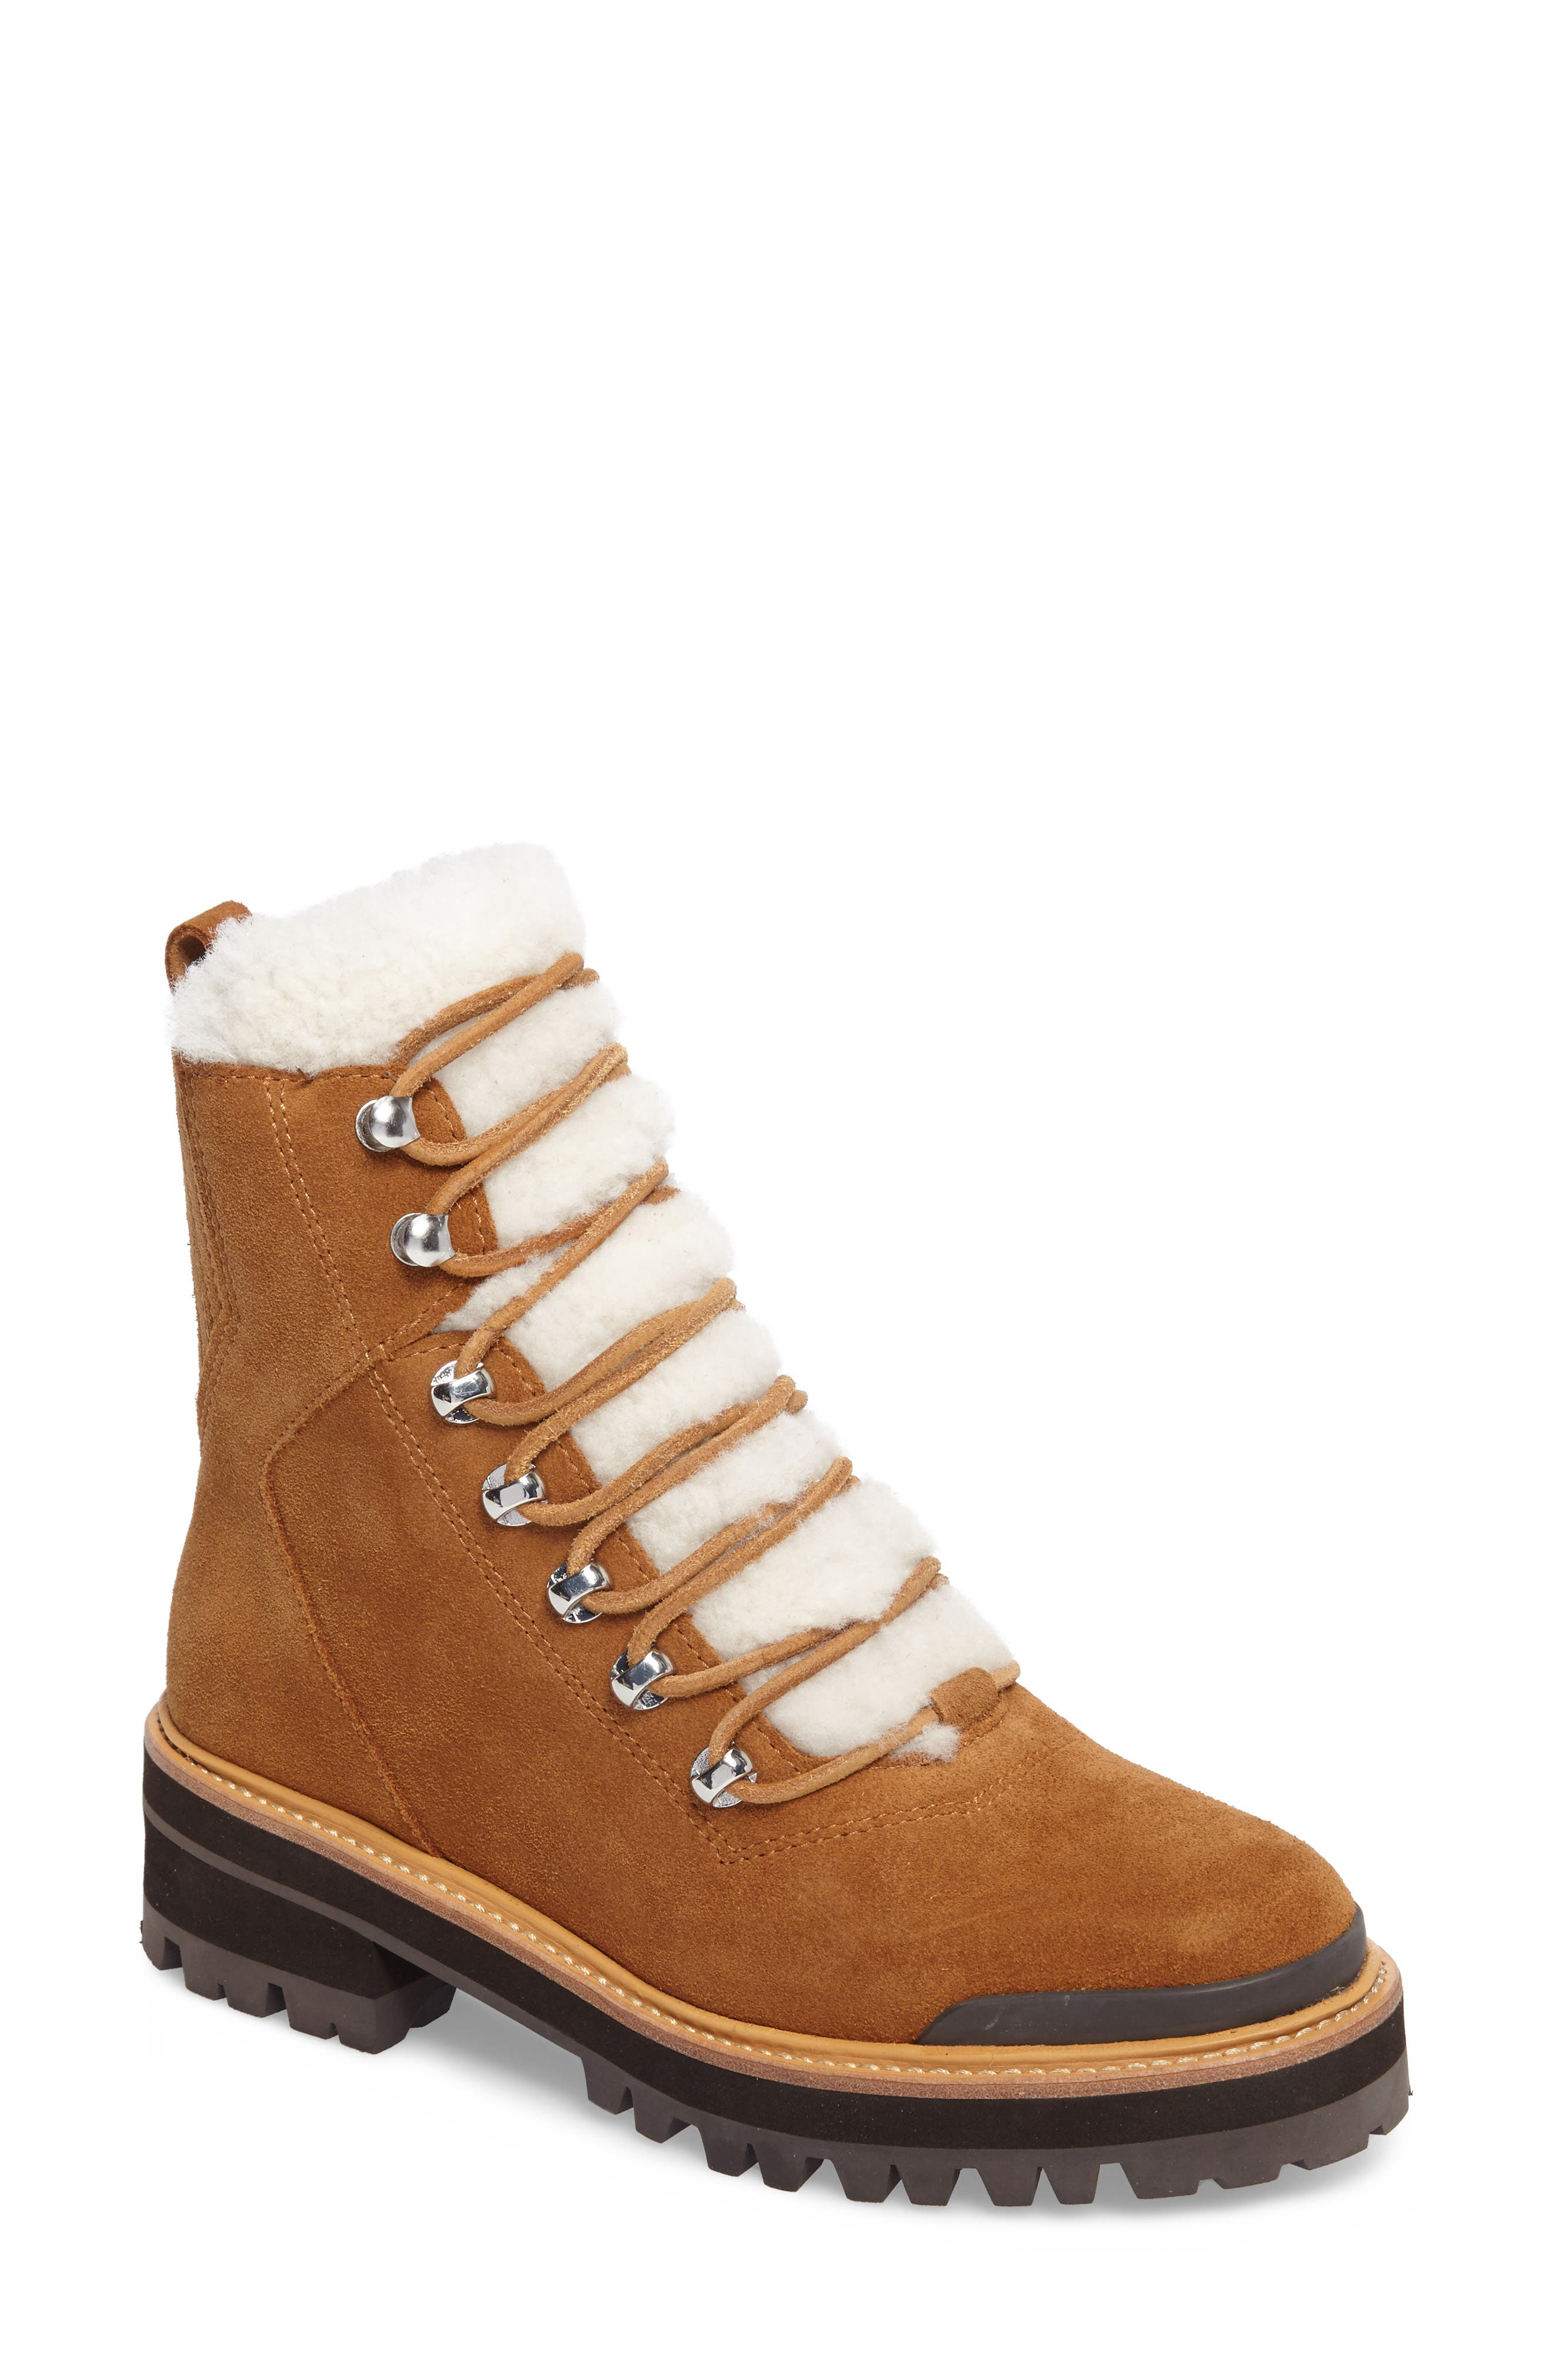 Alternate Image 1 Selected - Marc Fisher LTD Izzie Genuine Shearling Lace-Up Boot (Women)